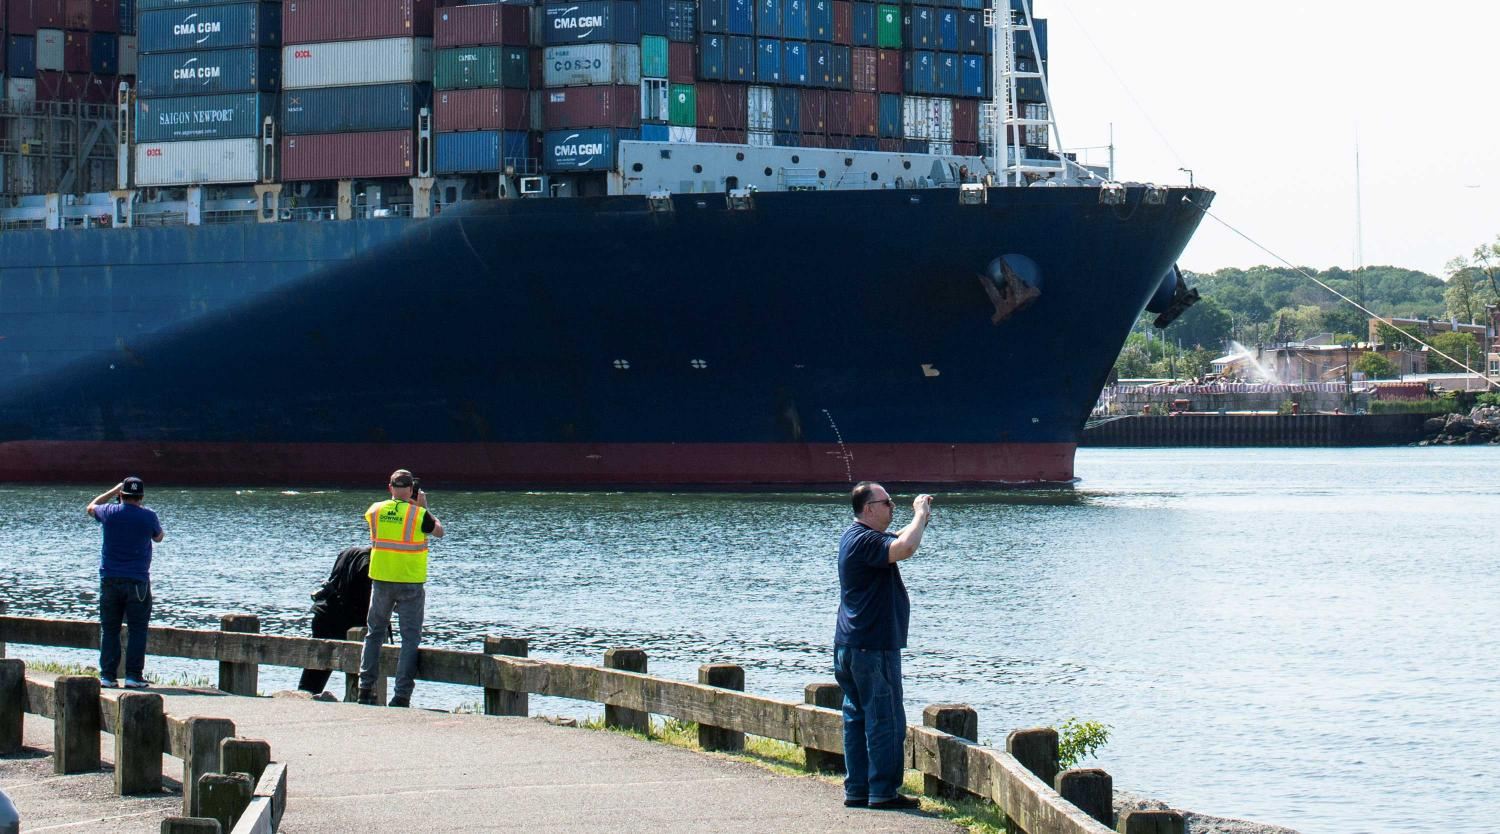 :  People take a look at a container ship entering Newark bay to dock in Elizabeth port as seen from Bayonne, New Jersey, U.S., May 20, 2021